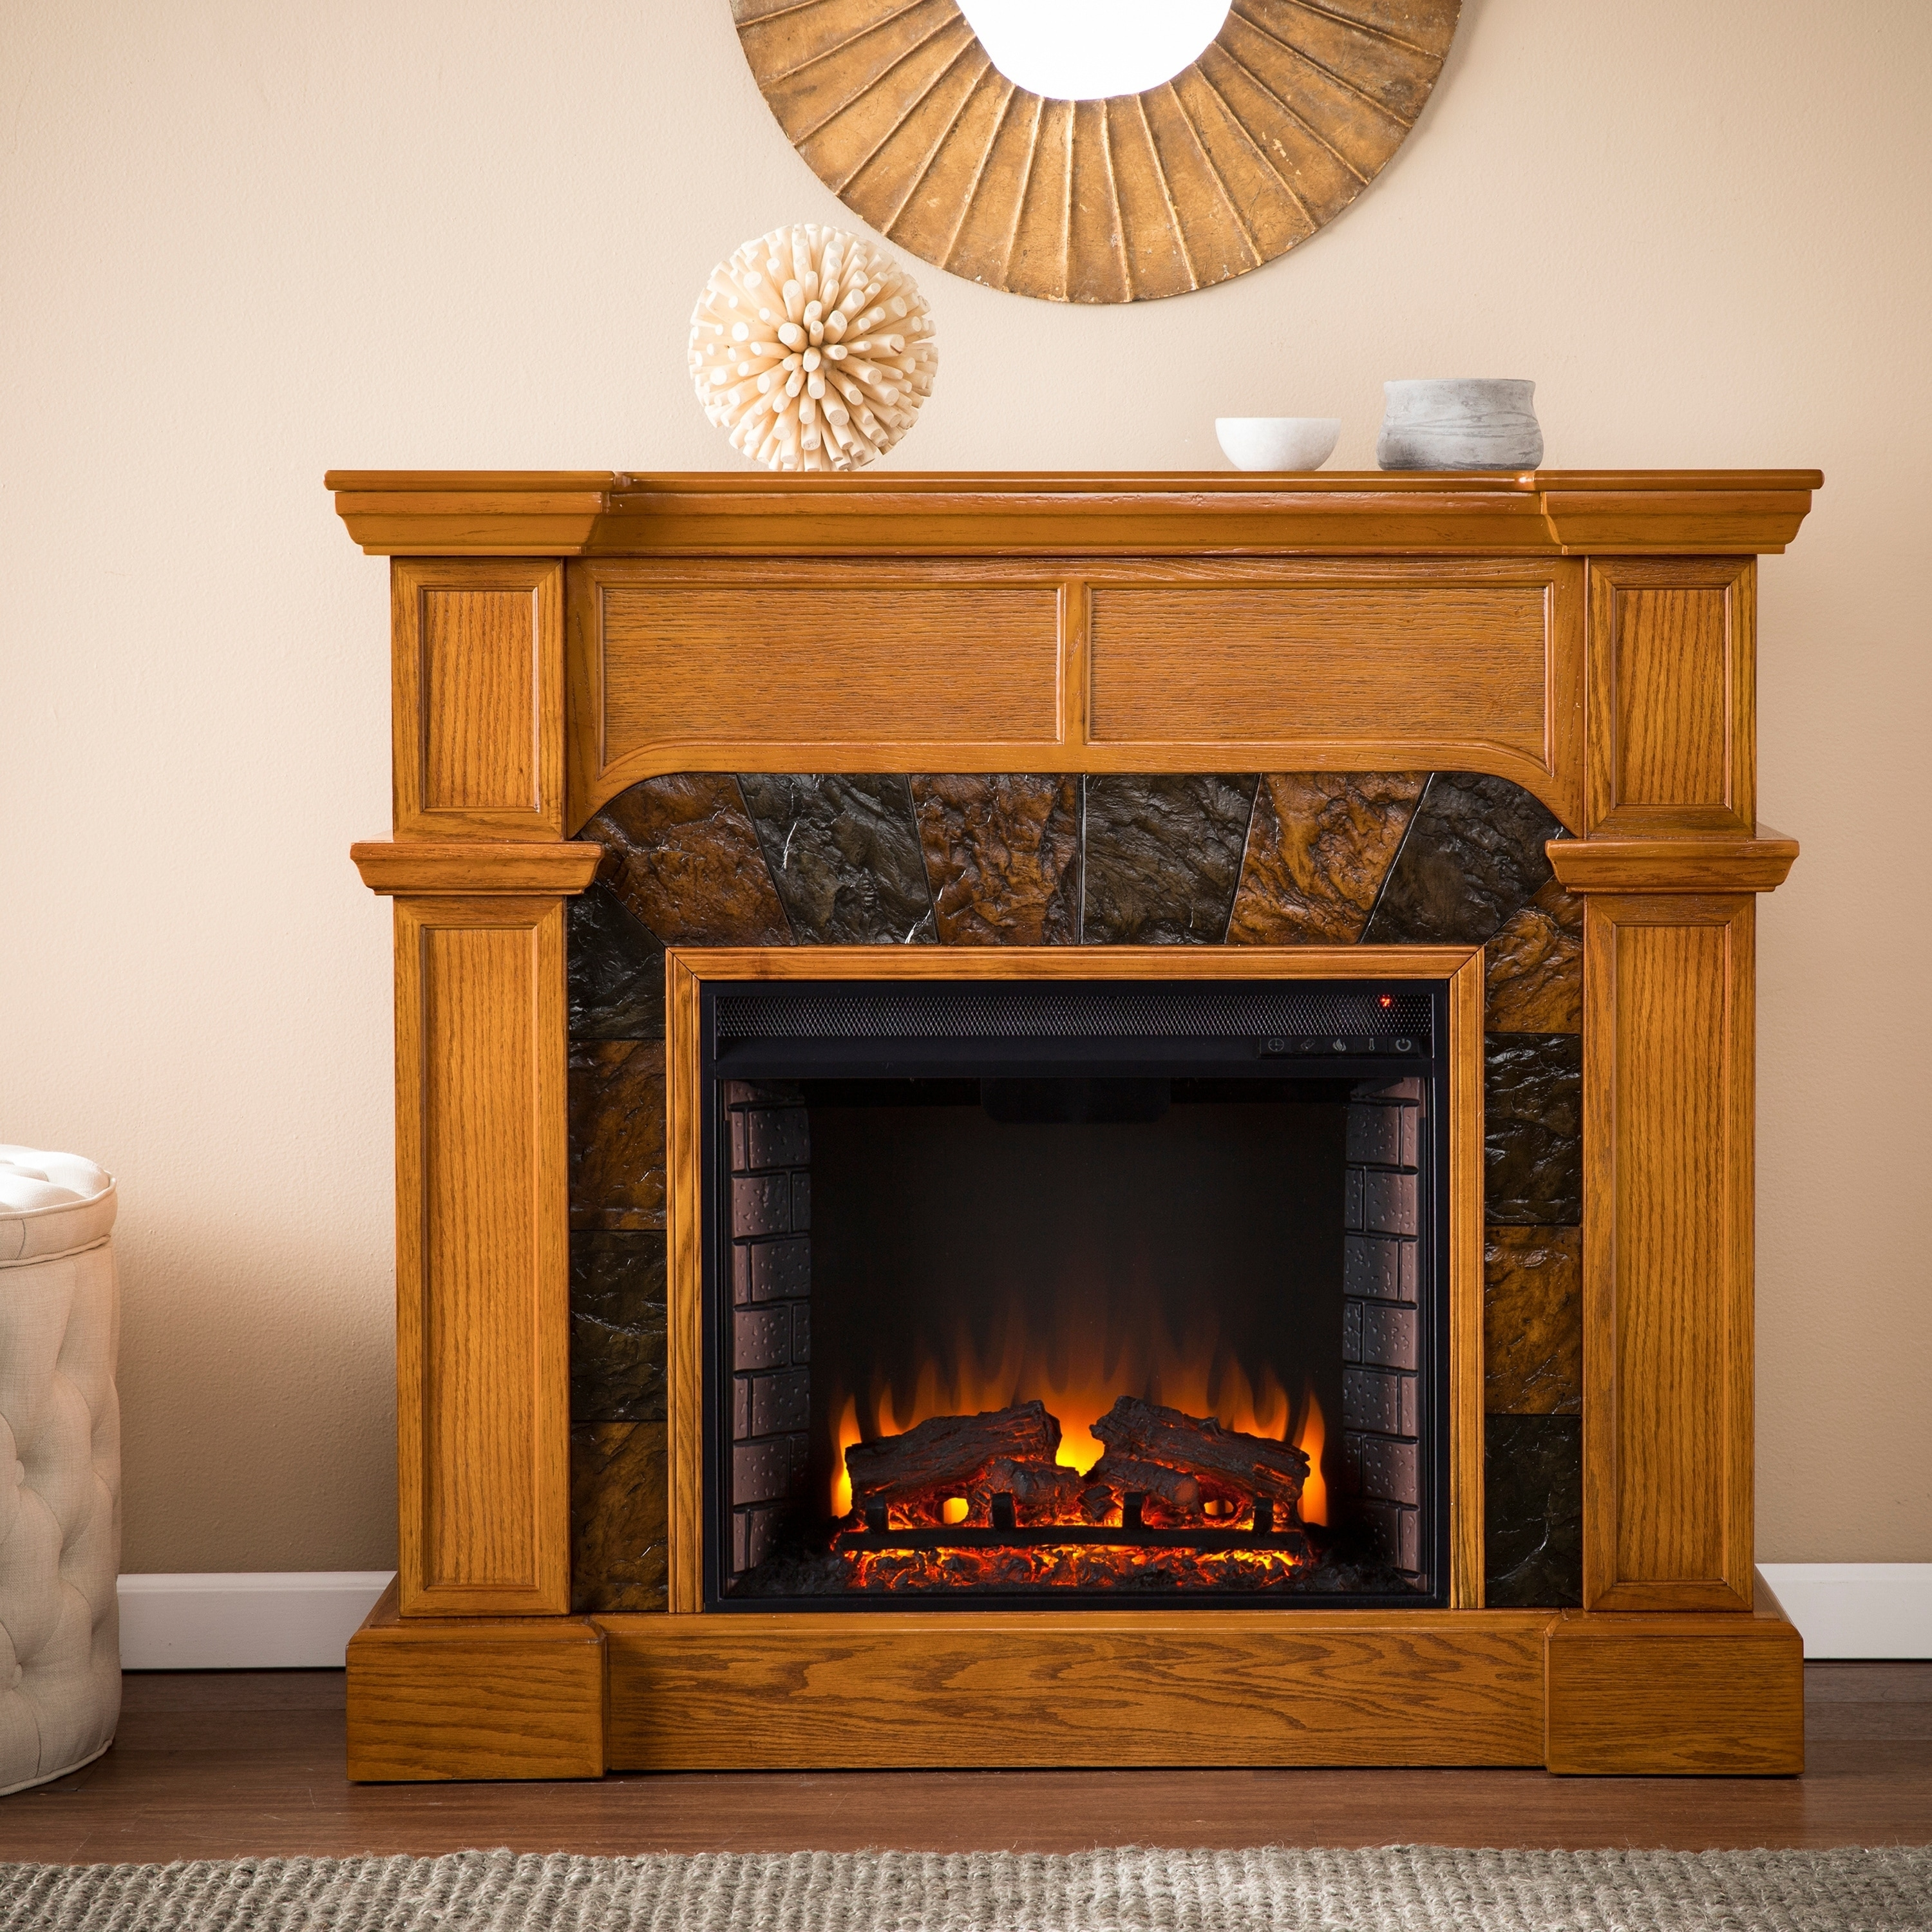 Best Electric Corner Fireplace For Small Space Zion Star